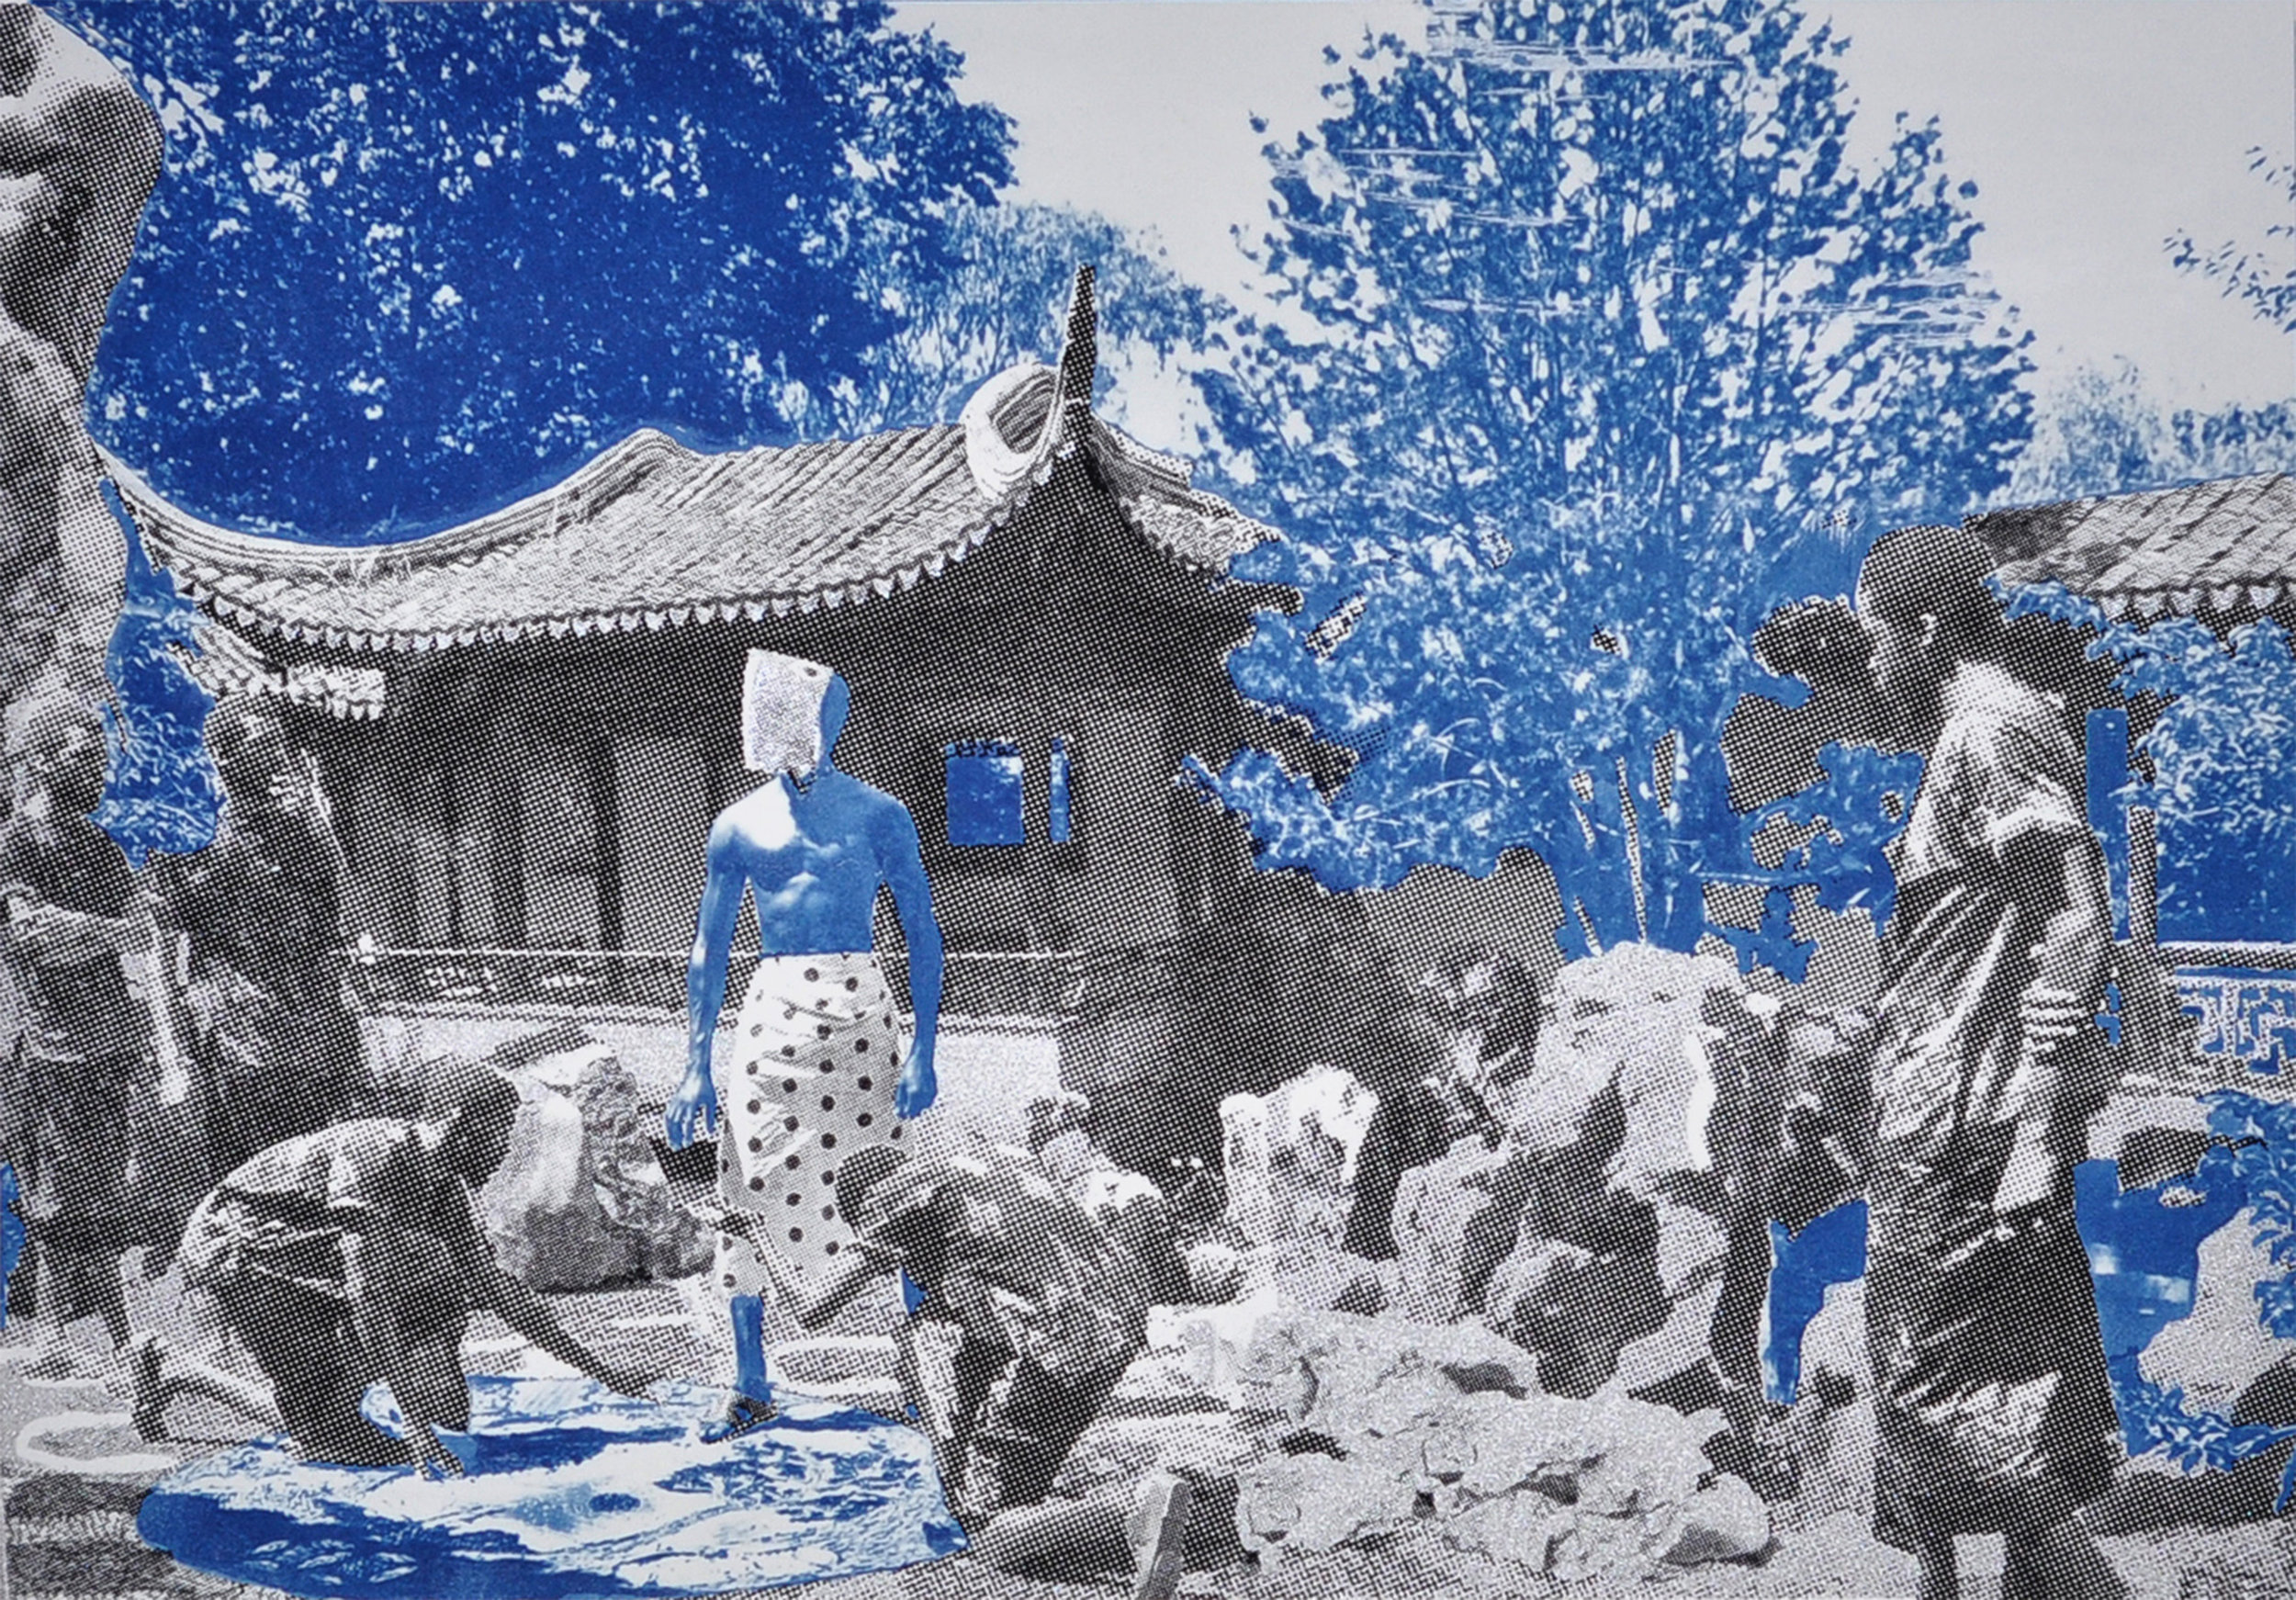 Ivan Forde,  Coming of Enkidu , 2016  Silkscreen and cyanotype on paper, 18 x 24 inches (image size) 22 x 30 inches (print size), edition of 3   Inquire